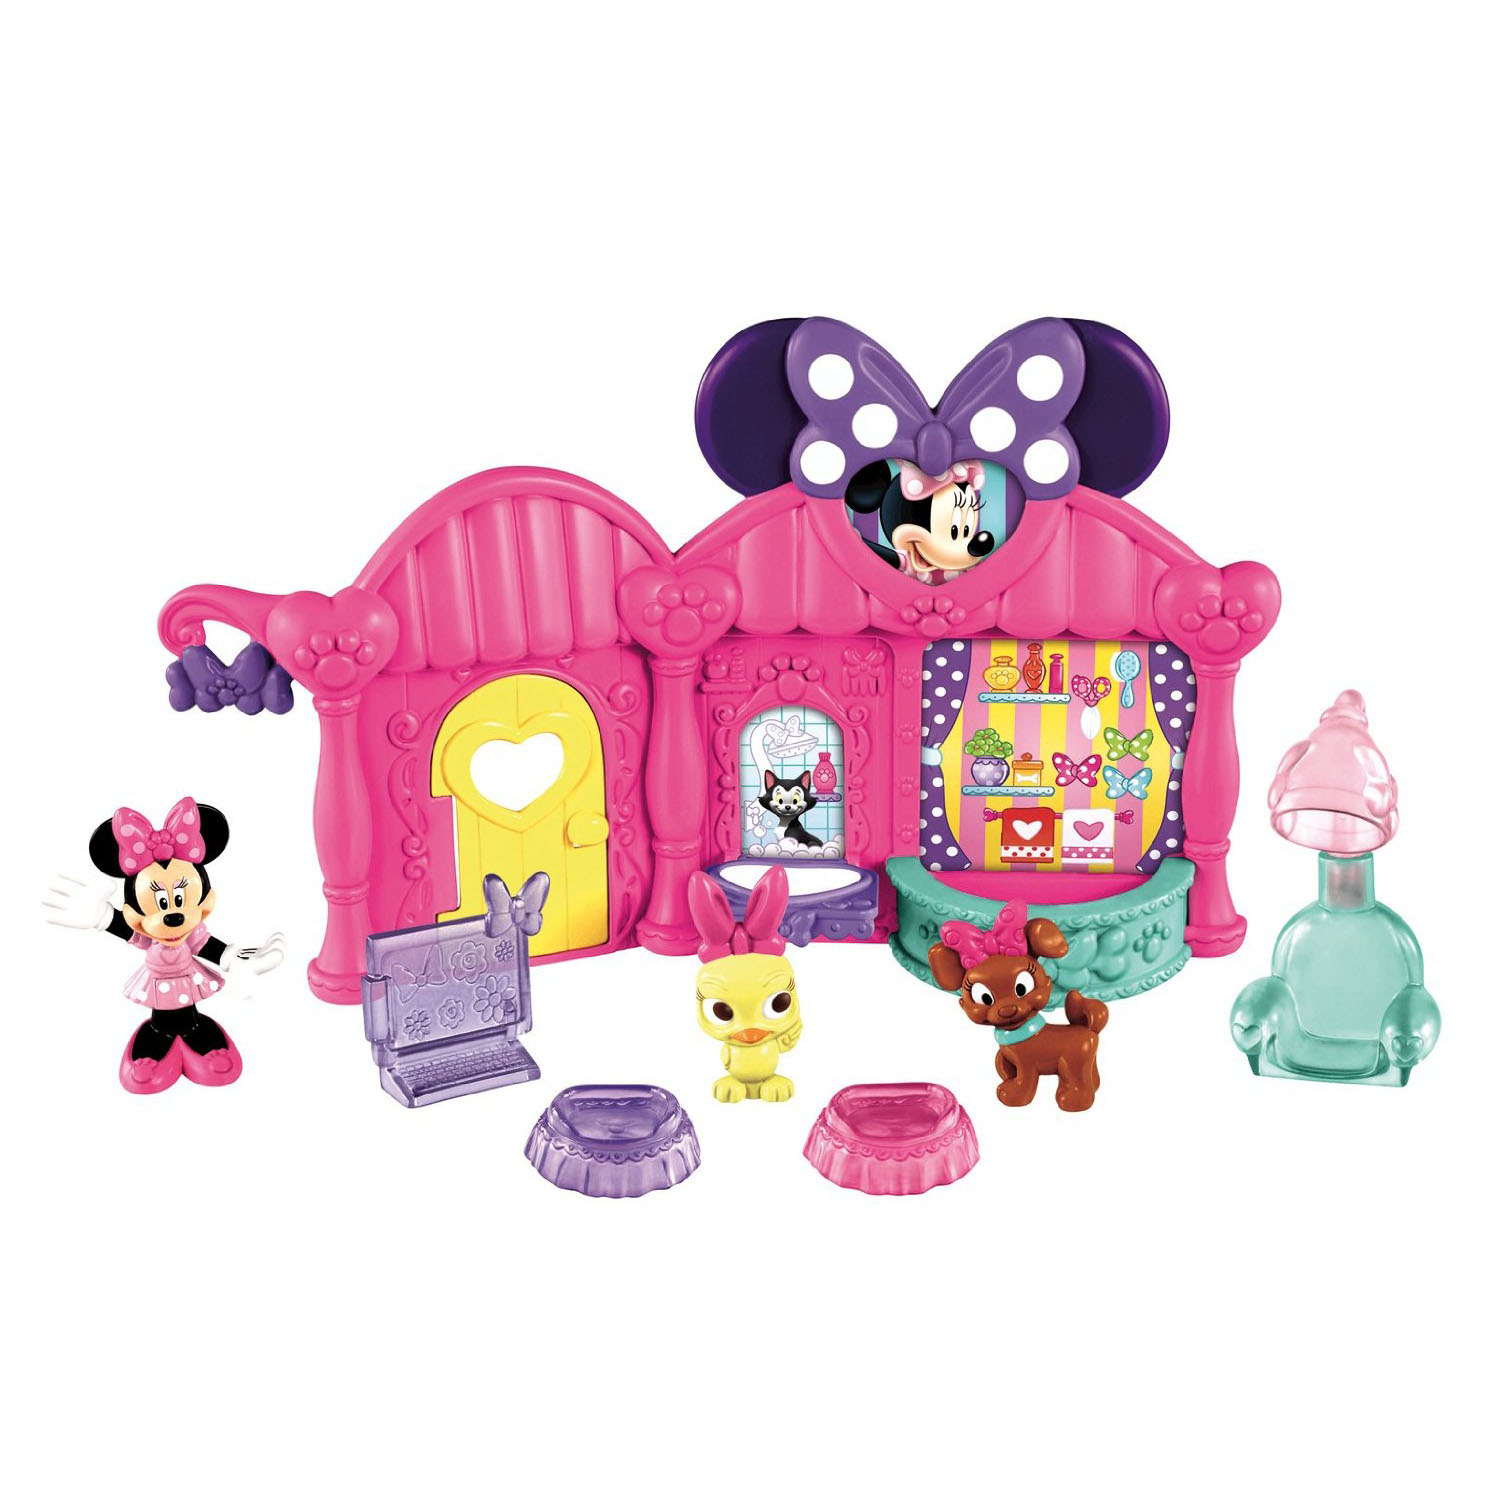 Minnie Mouse Toys : Minnie mouse toys pet salon at toystop